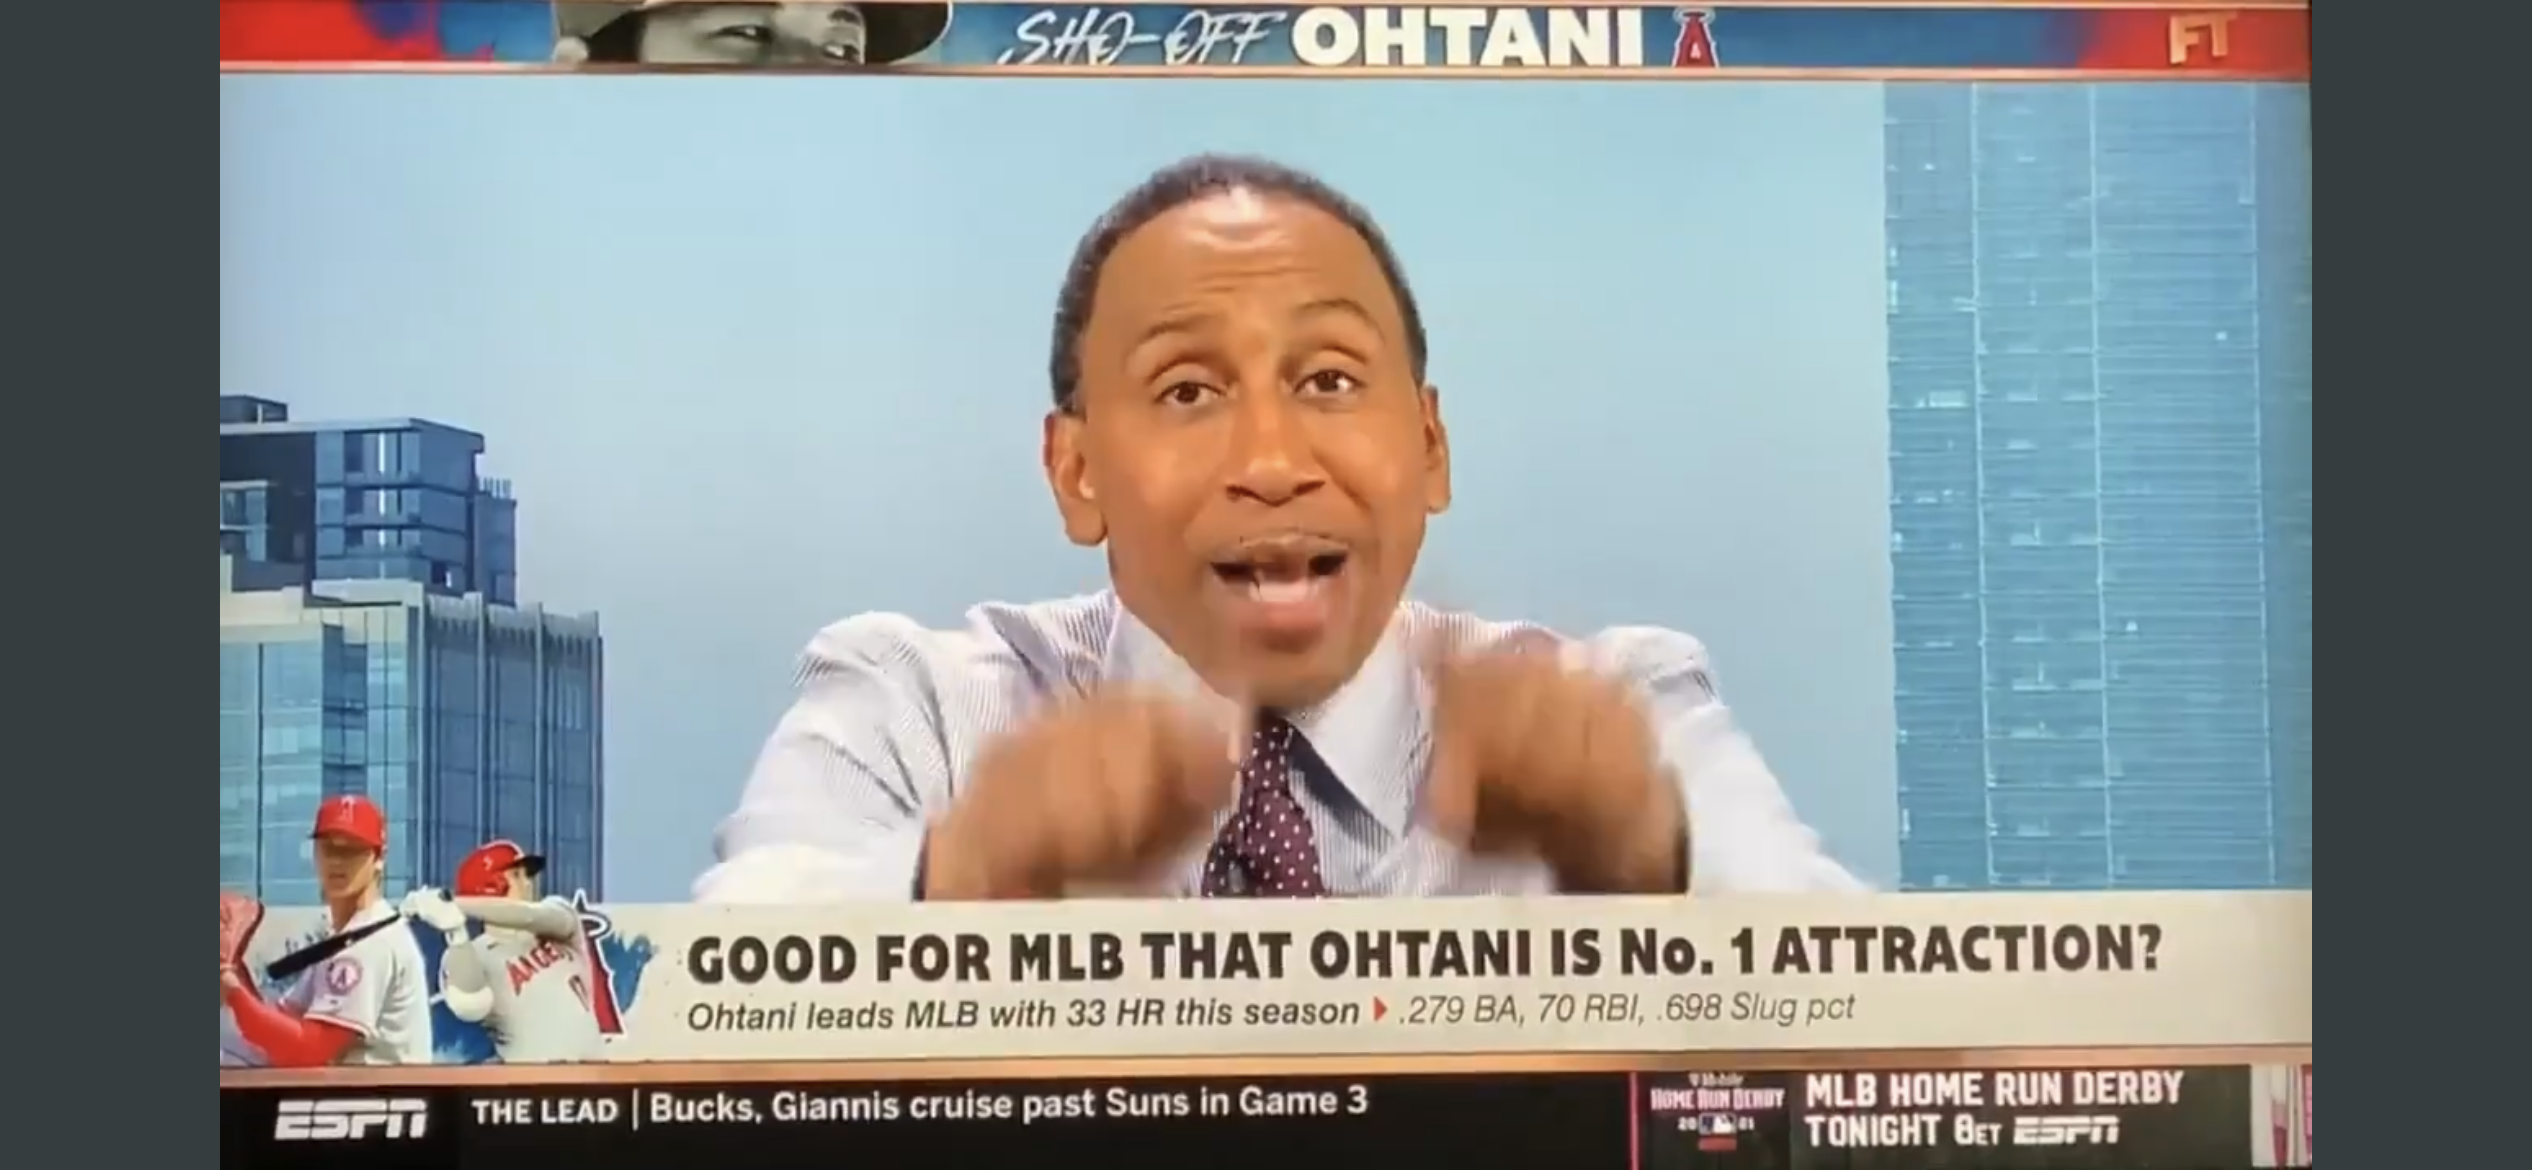 Let's Play, Is This Racist? Featuring Stephen A. Smith